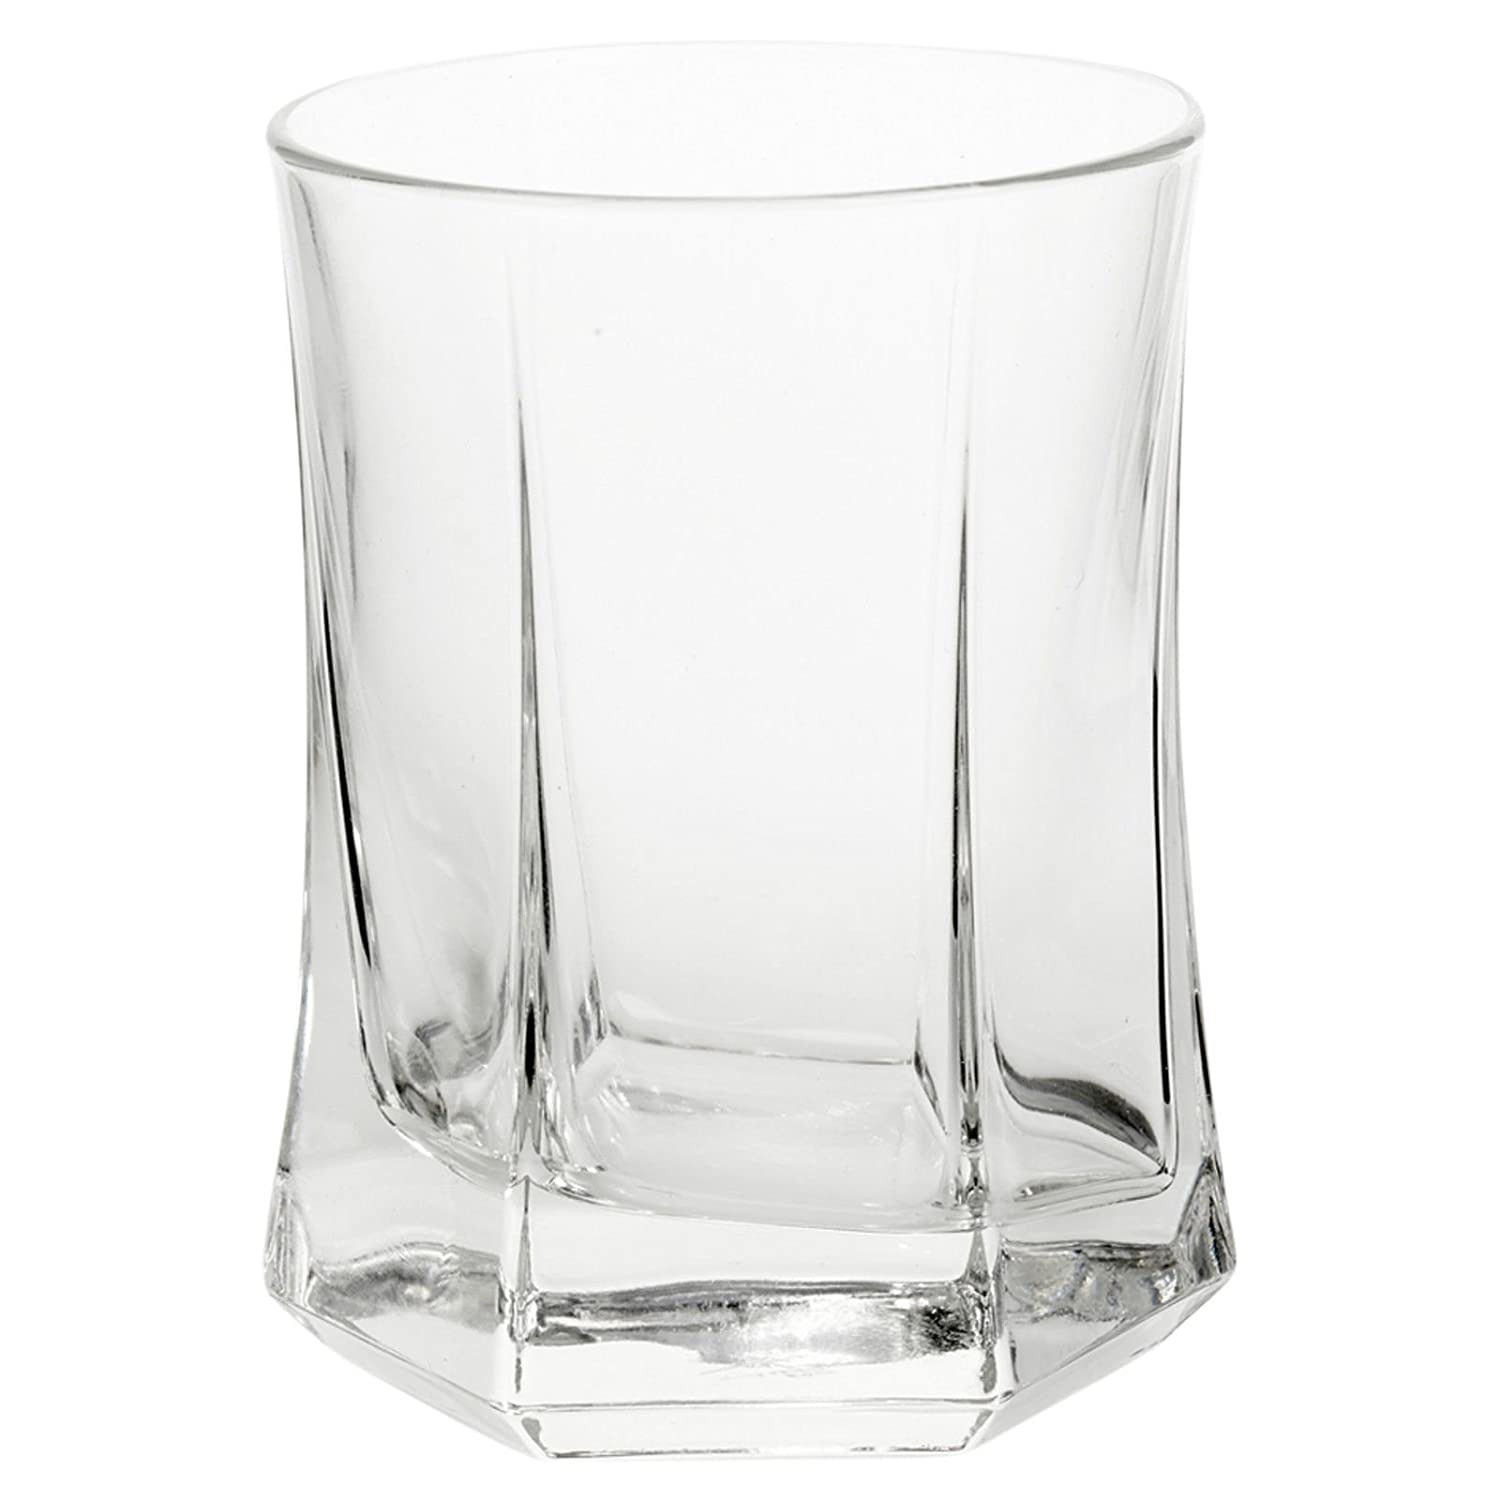 Bormioli Rocco Large Tumblers Drinking Glass Glasses Cups - Set of 6 - Made In Italy